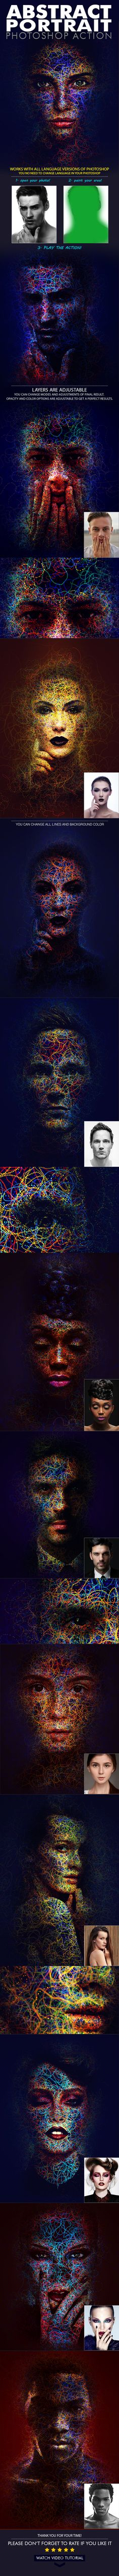 Abstract Portrait Action — Photoshop ATN #tutorial #atn • Download ➝ https://graphicriver.net/item/abstract-portrait-photoshop-action/19746177?ref=pxcr